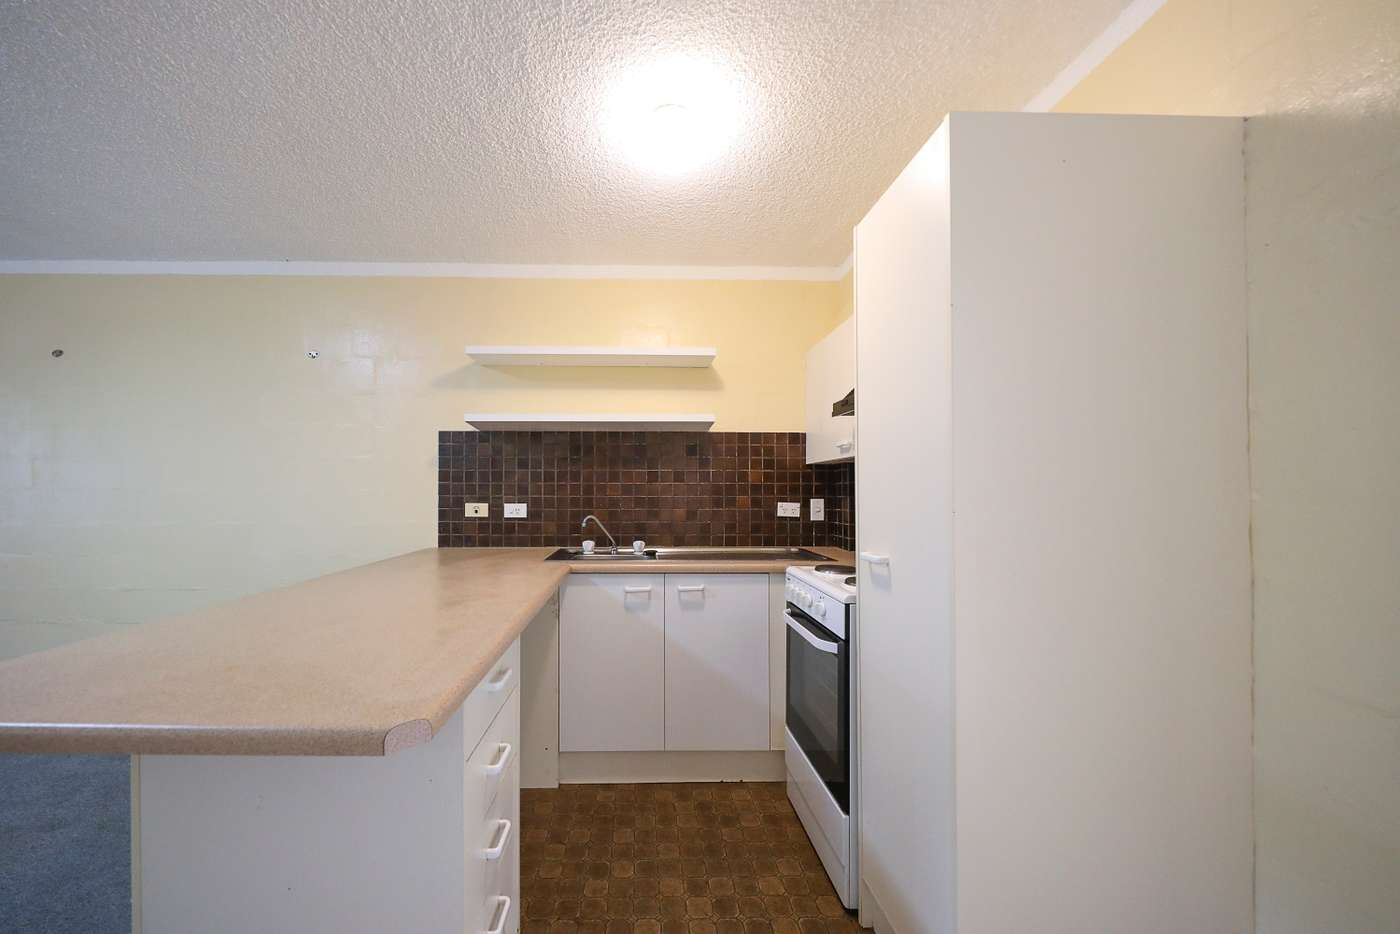 Main view of Homely flat listing, 4/2 Arika Avenue, Ocean Shores NSW 2483